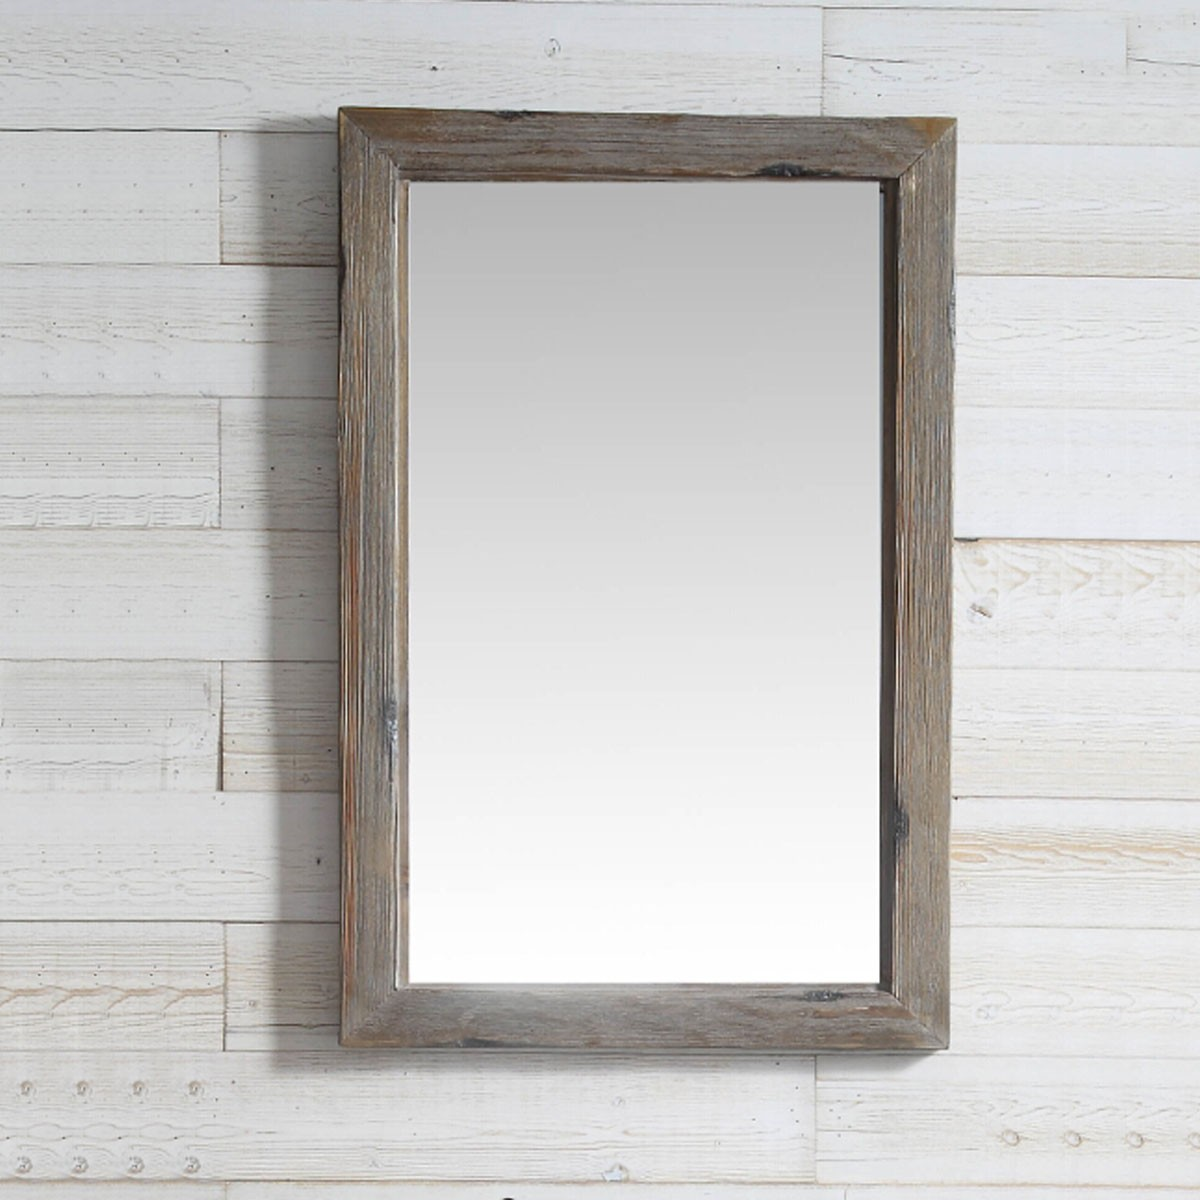 24 x 36 In Bath Vanity Décor Mirror with Fir Wood Frame (DK-WH9324-LB)